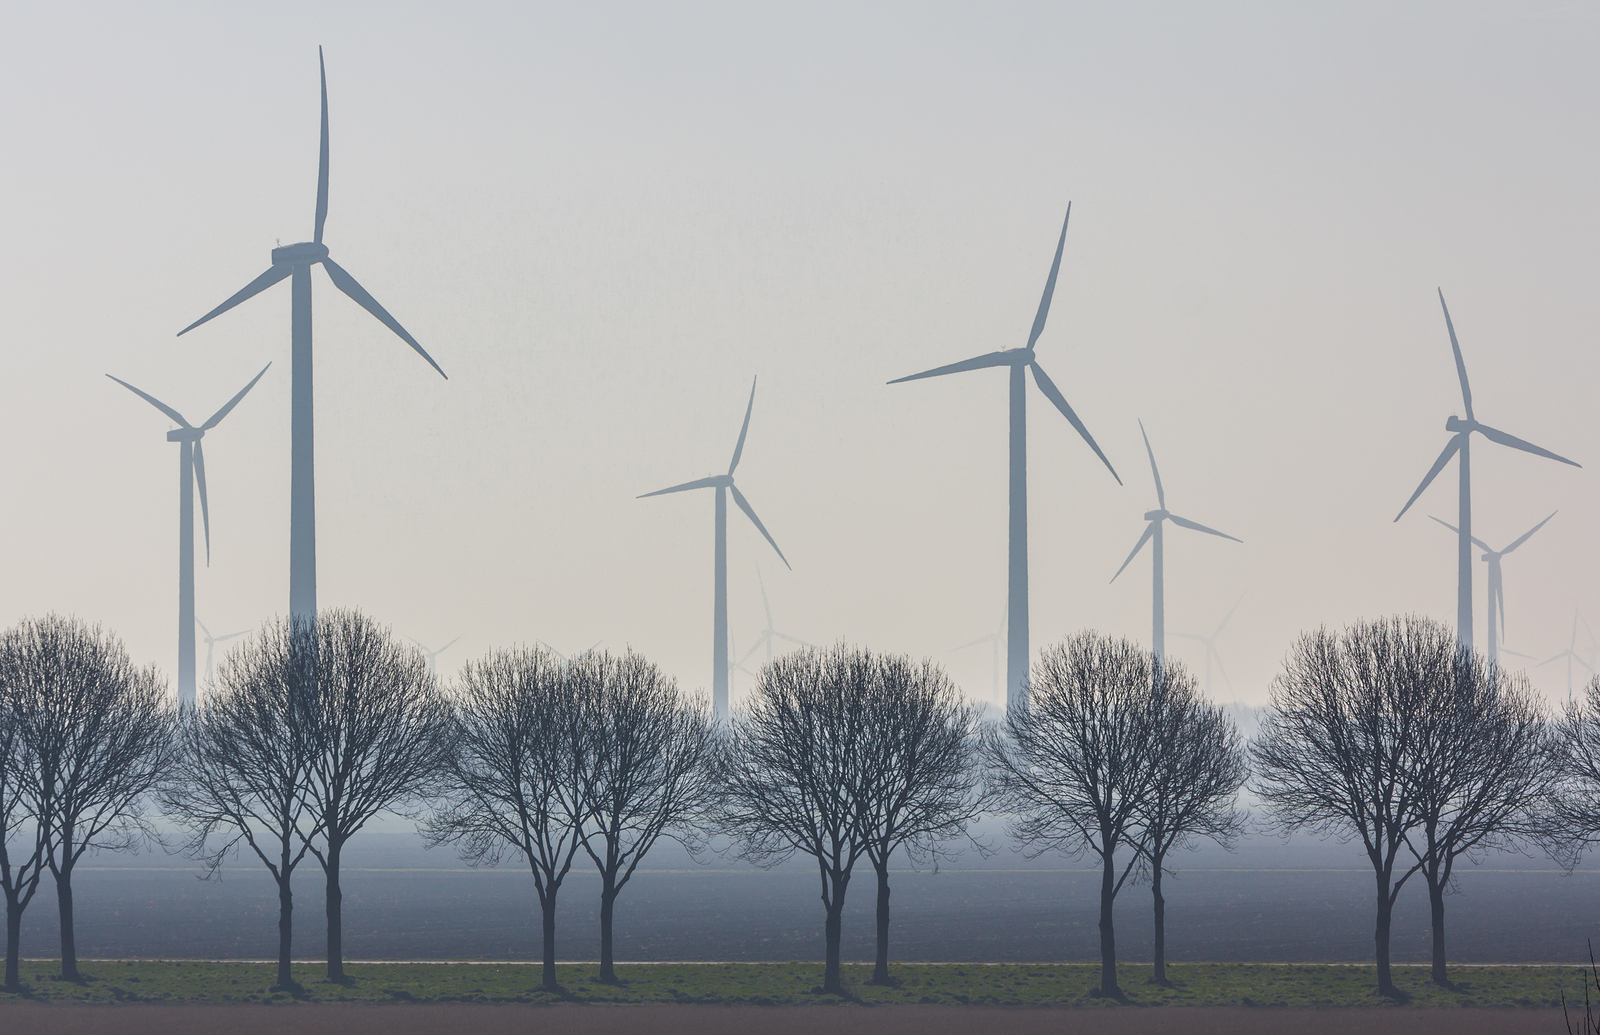 Line of trees with Windmills in bakground